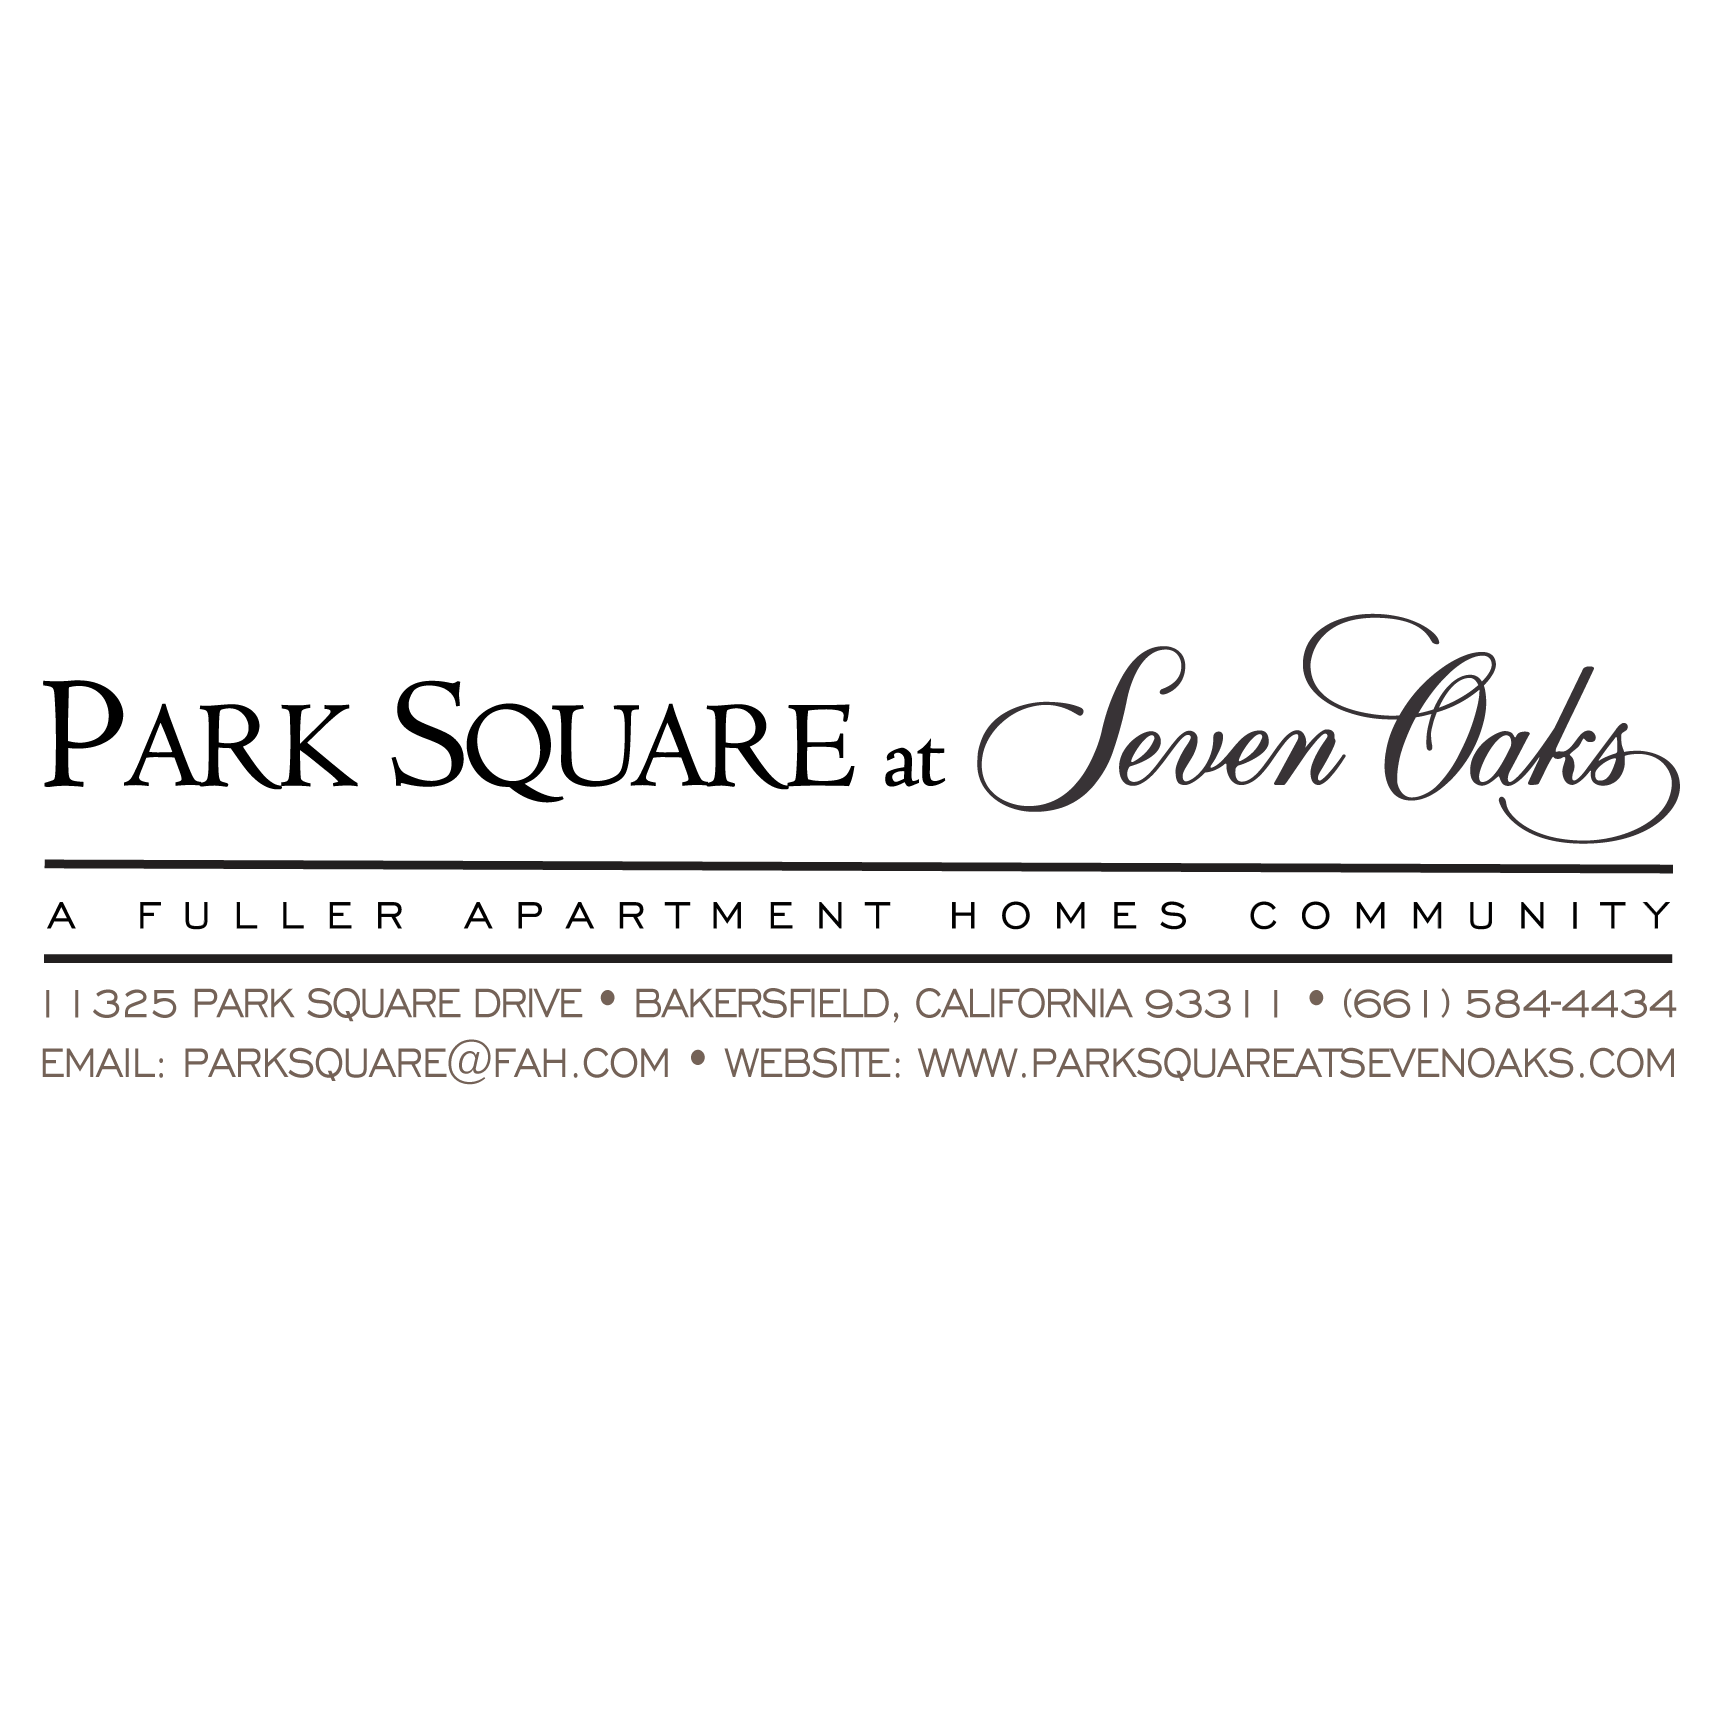 Park Square At Seven Oaks - Bakersfield, CA 93311 - (661)584-4434 | ShowMeLocal.com